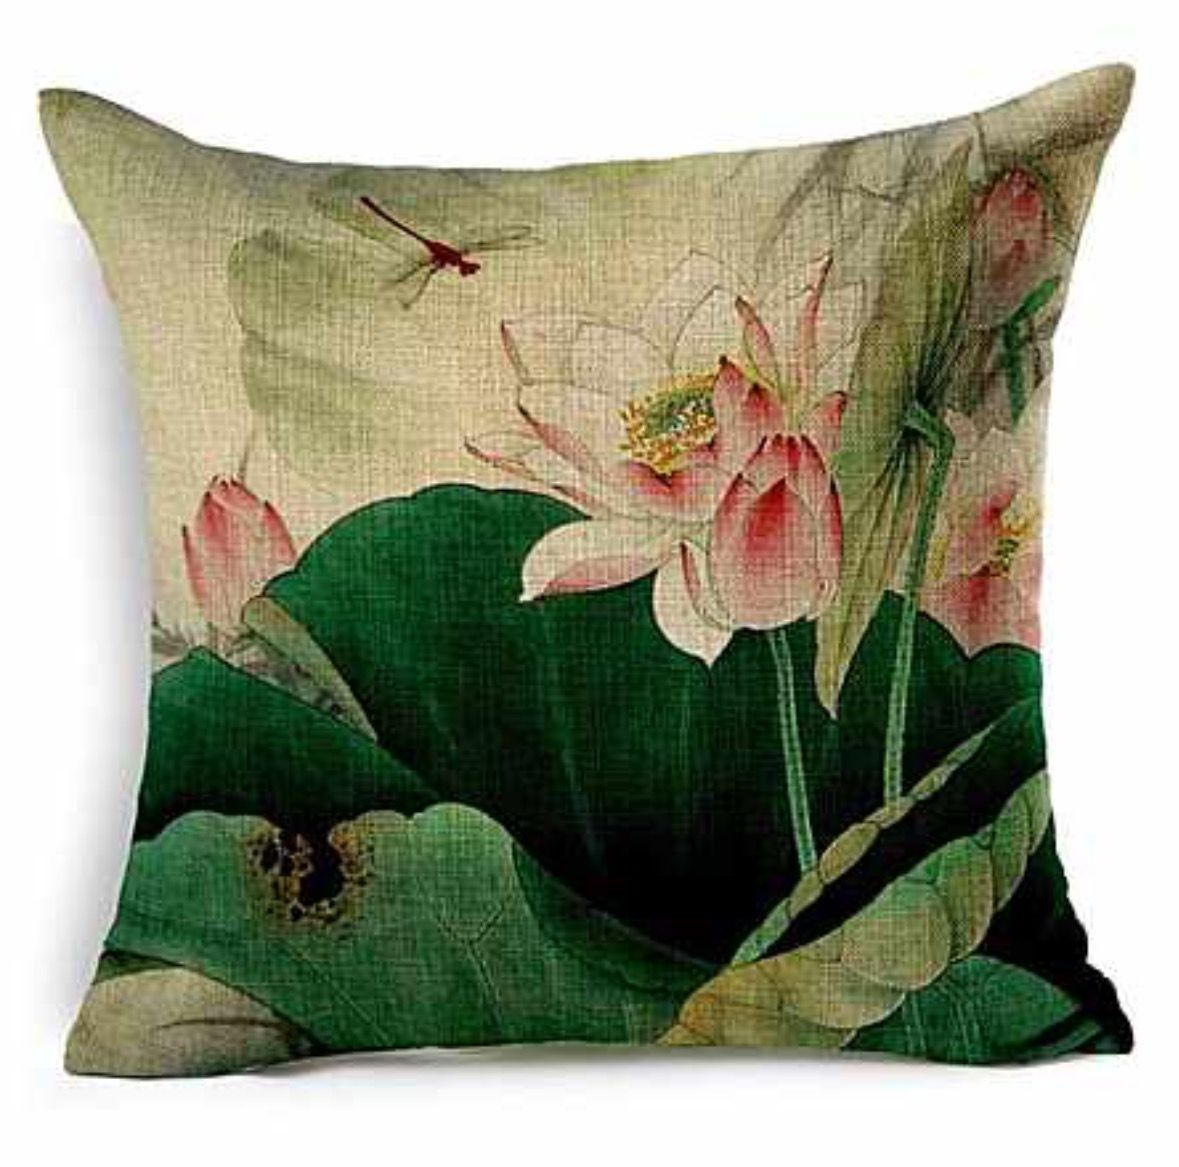 Pin by milena on floral pinterest pillows